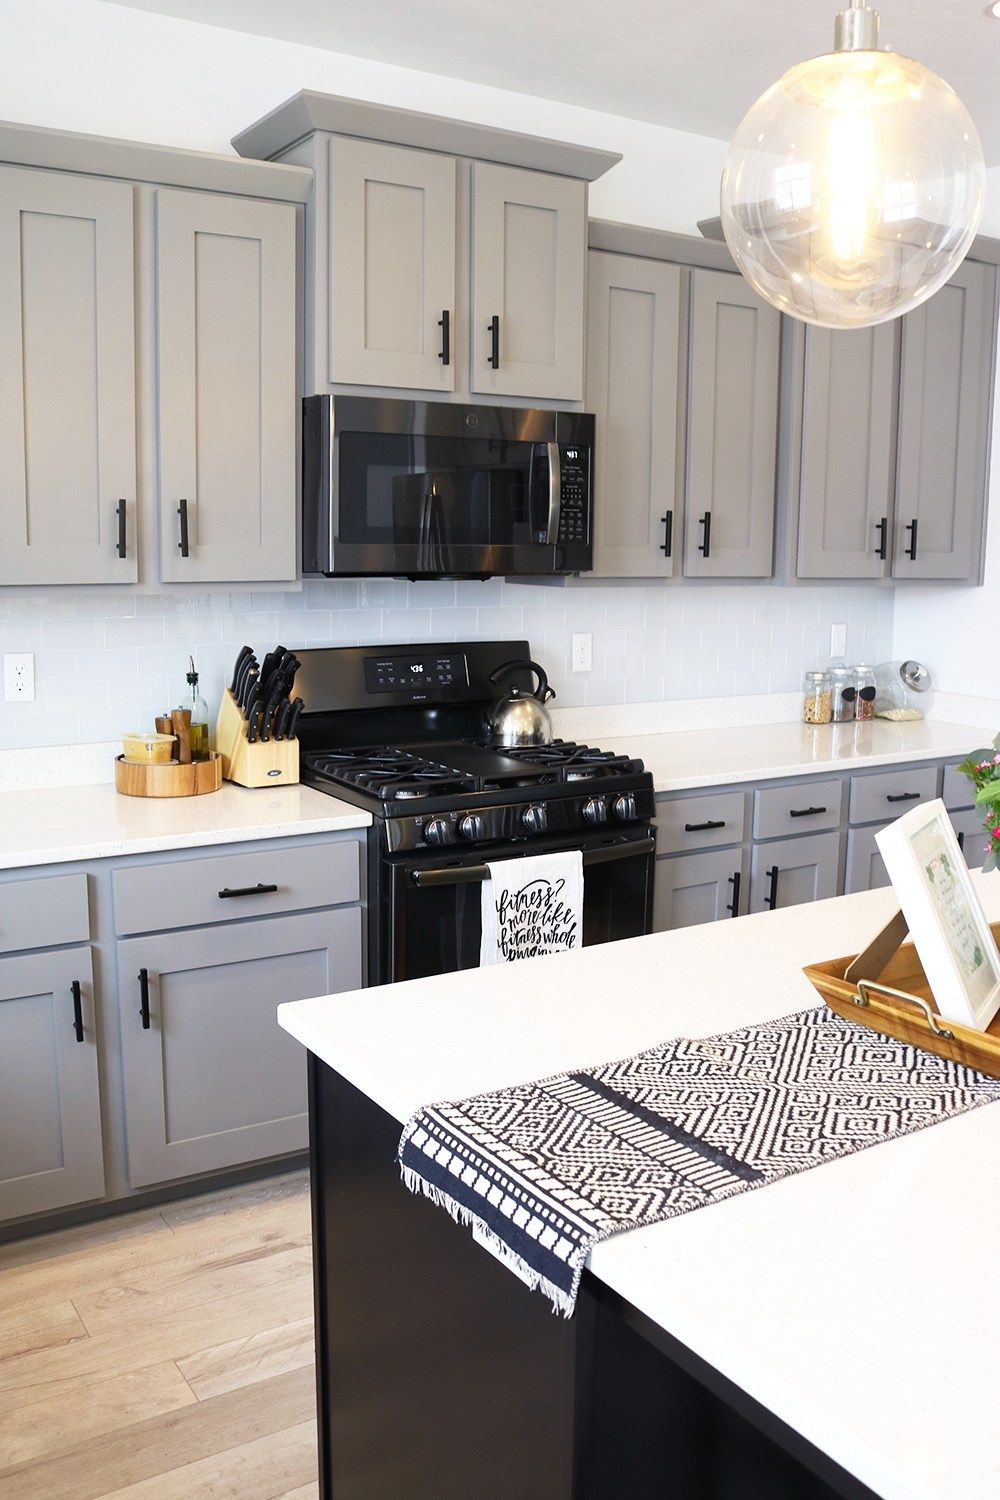 Black Stainless Steel Appliances What You Need to Know